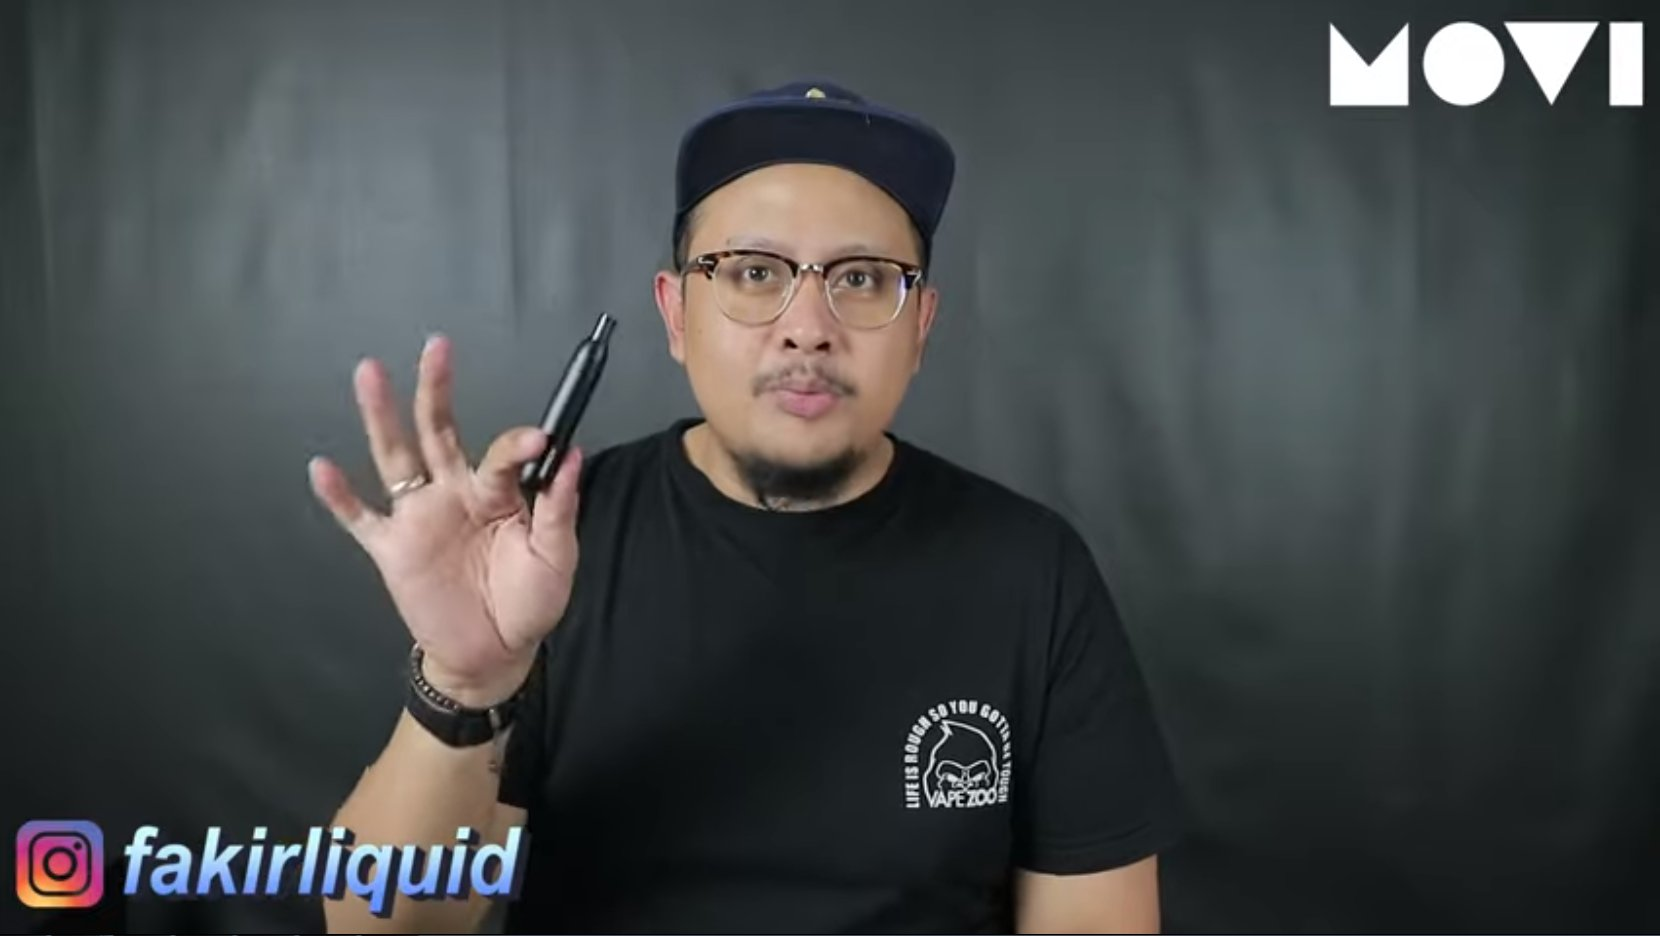 Fakir Liquid_I SWITCH by MOVI . SAATNYA BERALIH KE VAPE !!